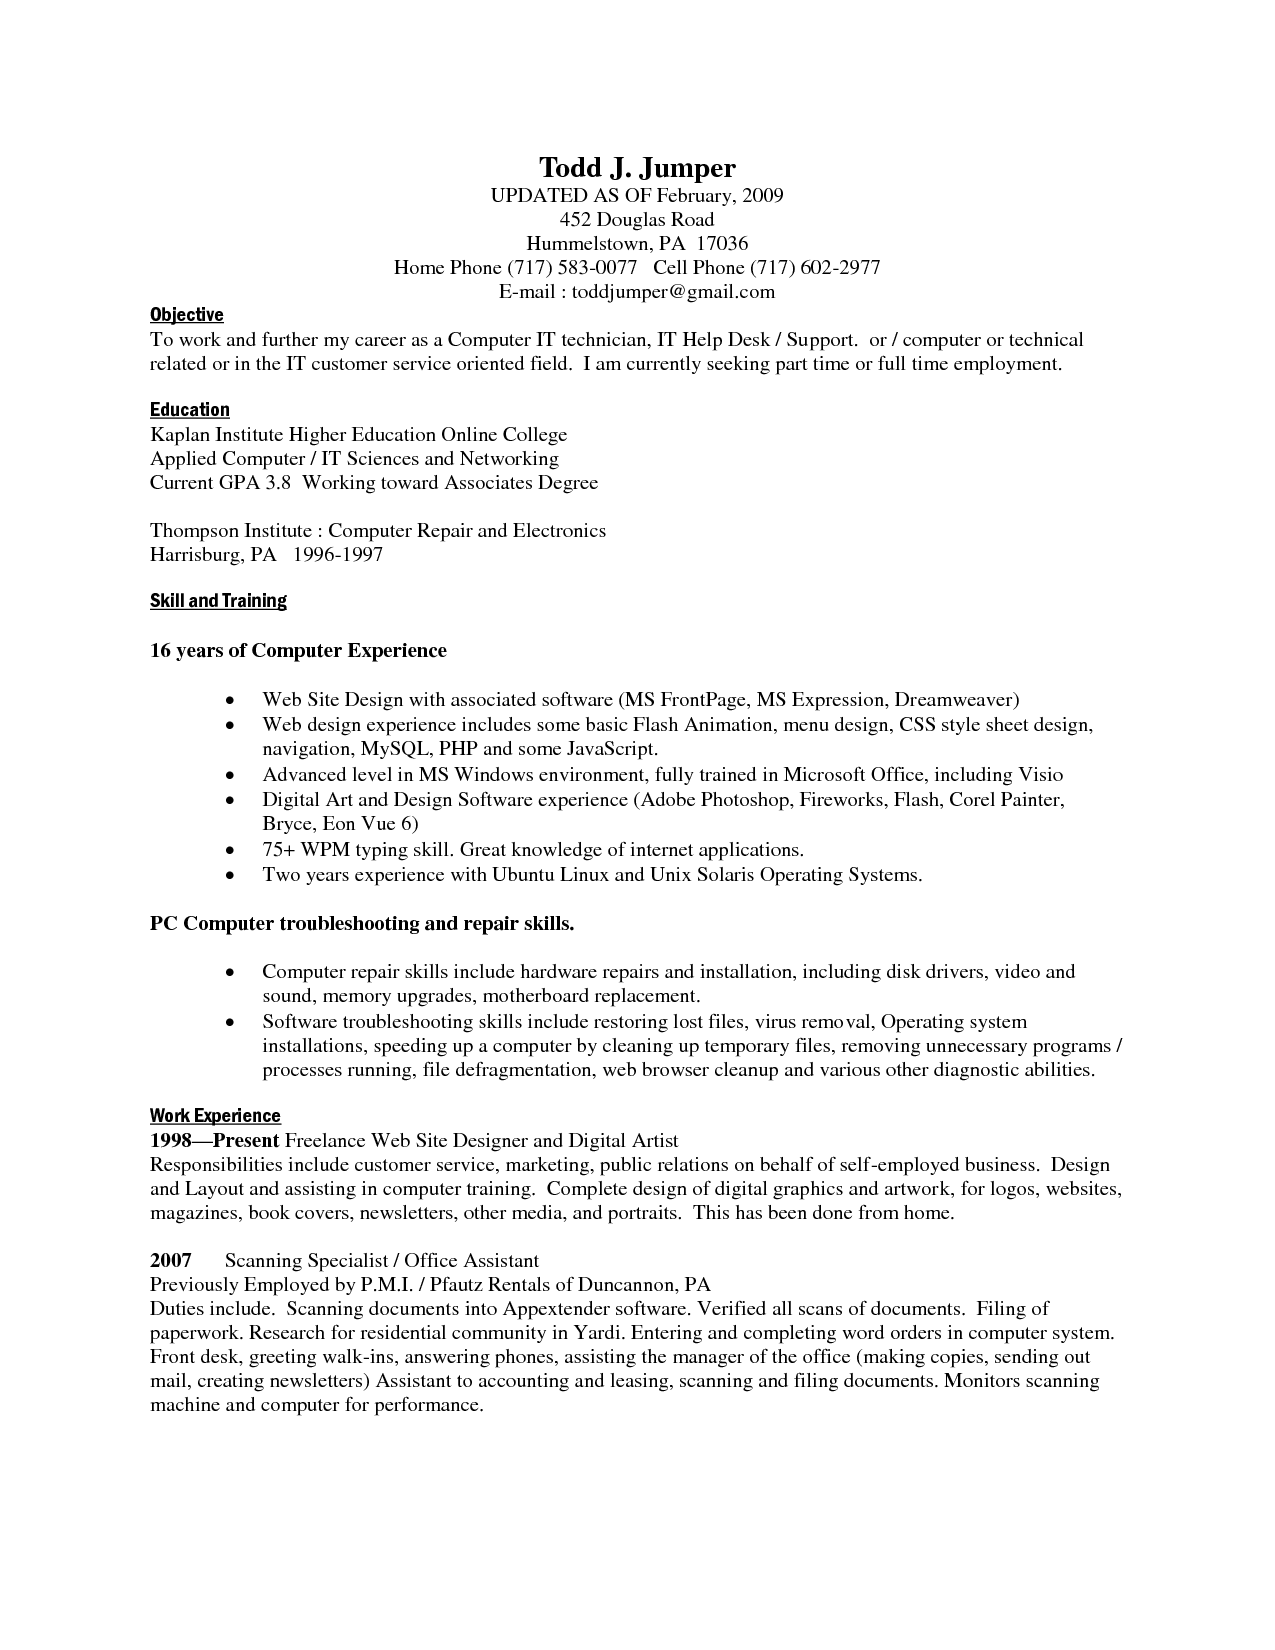 Computer Skills On Sample Resume  HttpWwwResumecareerInfo